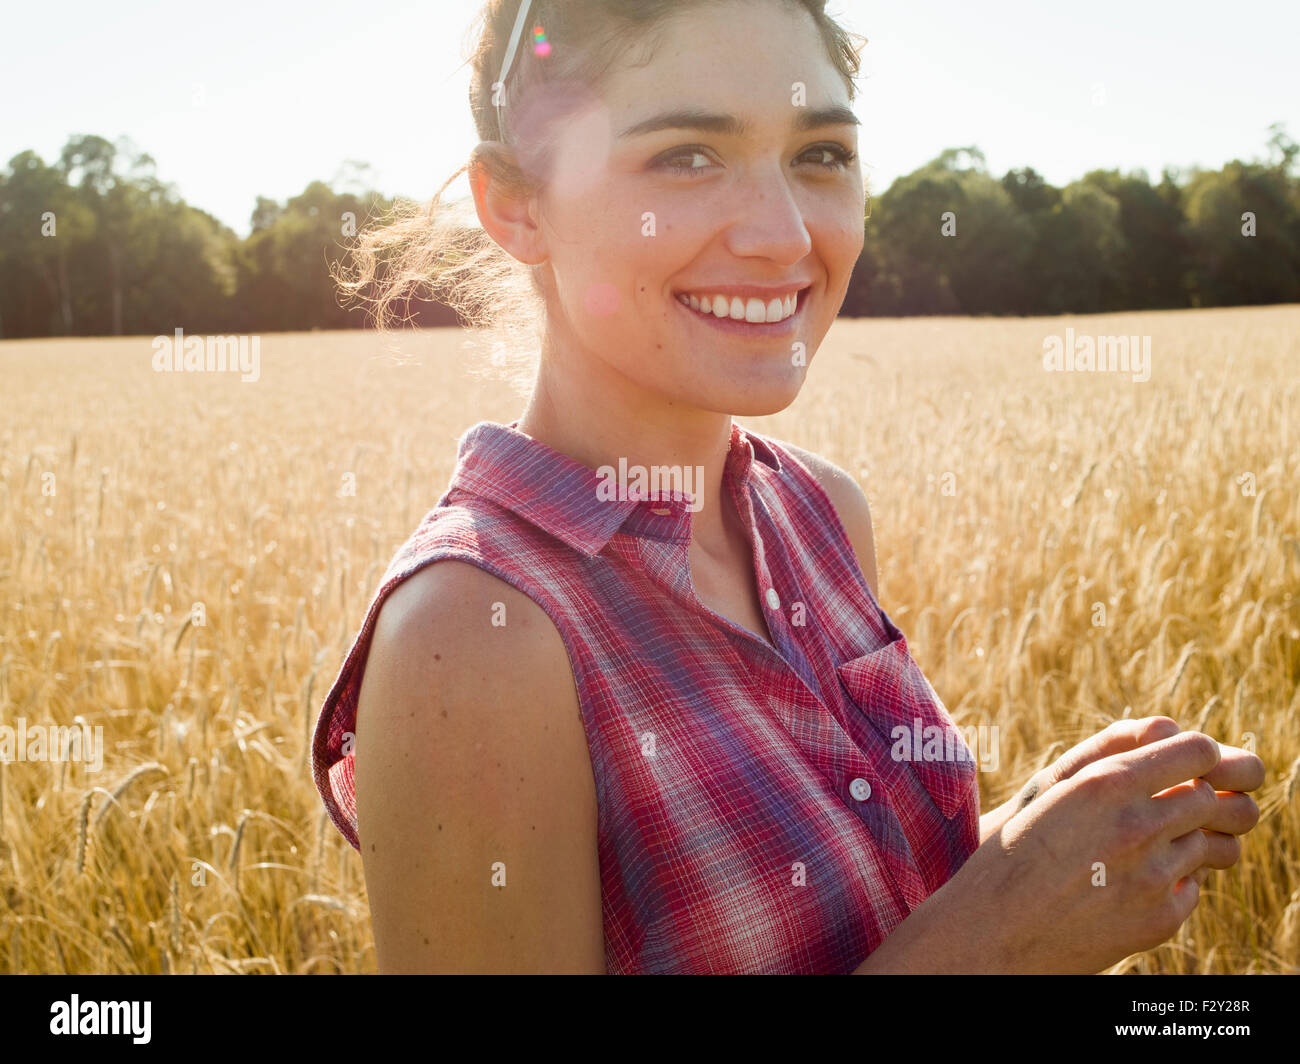 Smiling young woman wearing a checkered shirt standing in a cornfield. - Stock Image